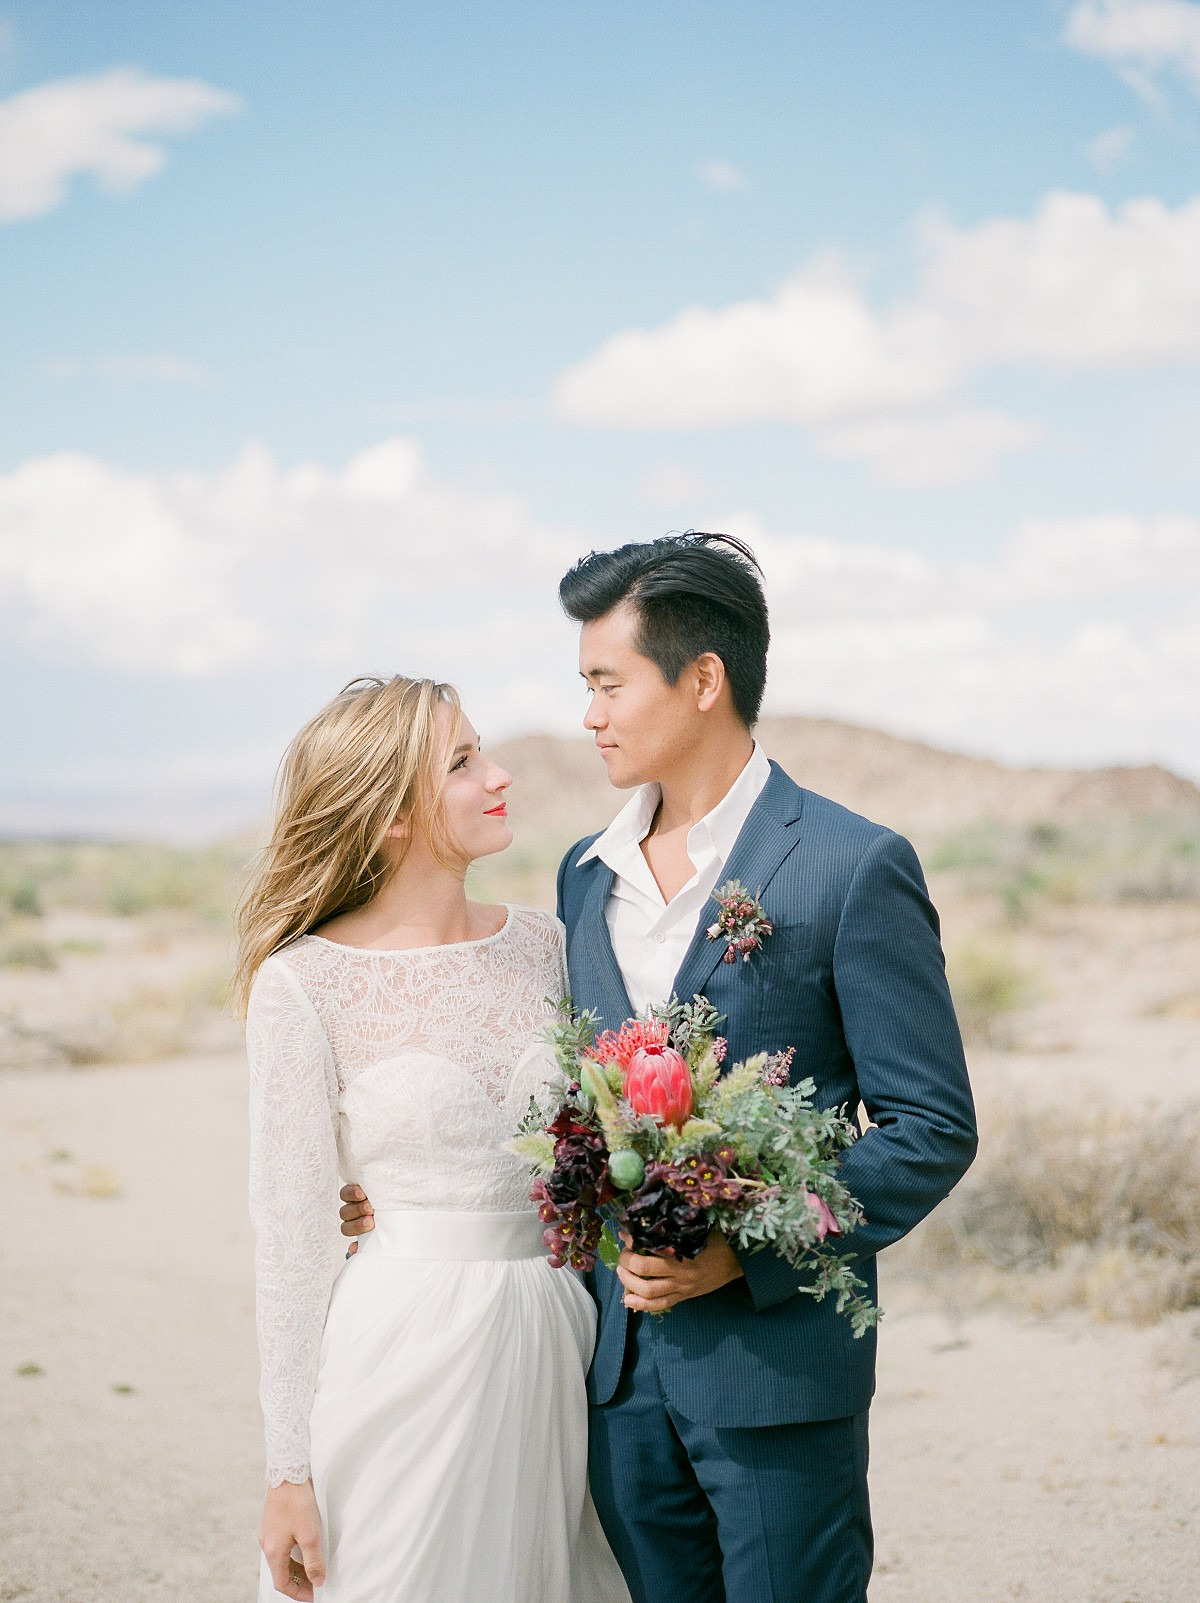 Southern California and Destination film photography by Heather Anderson